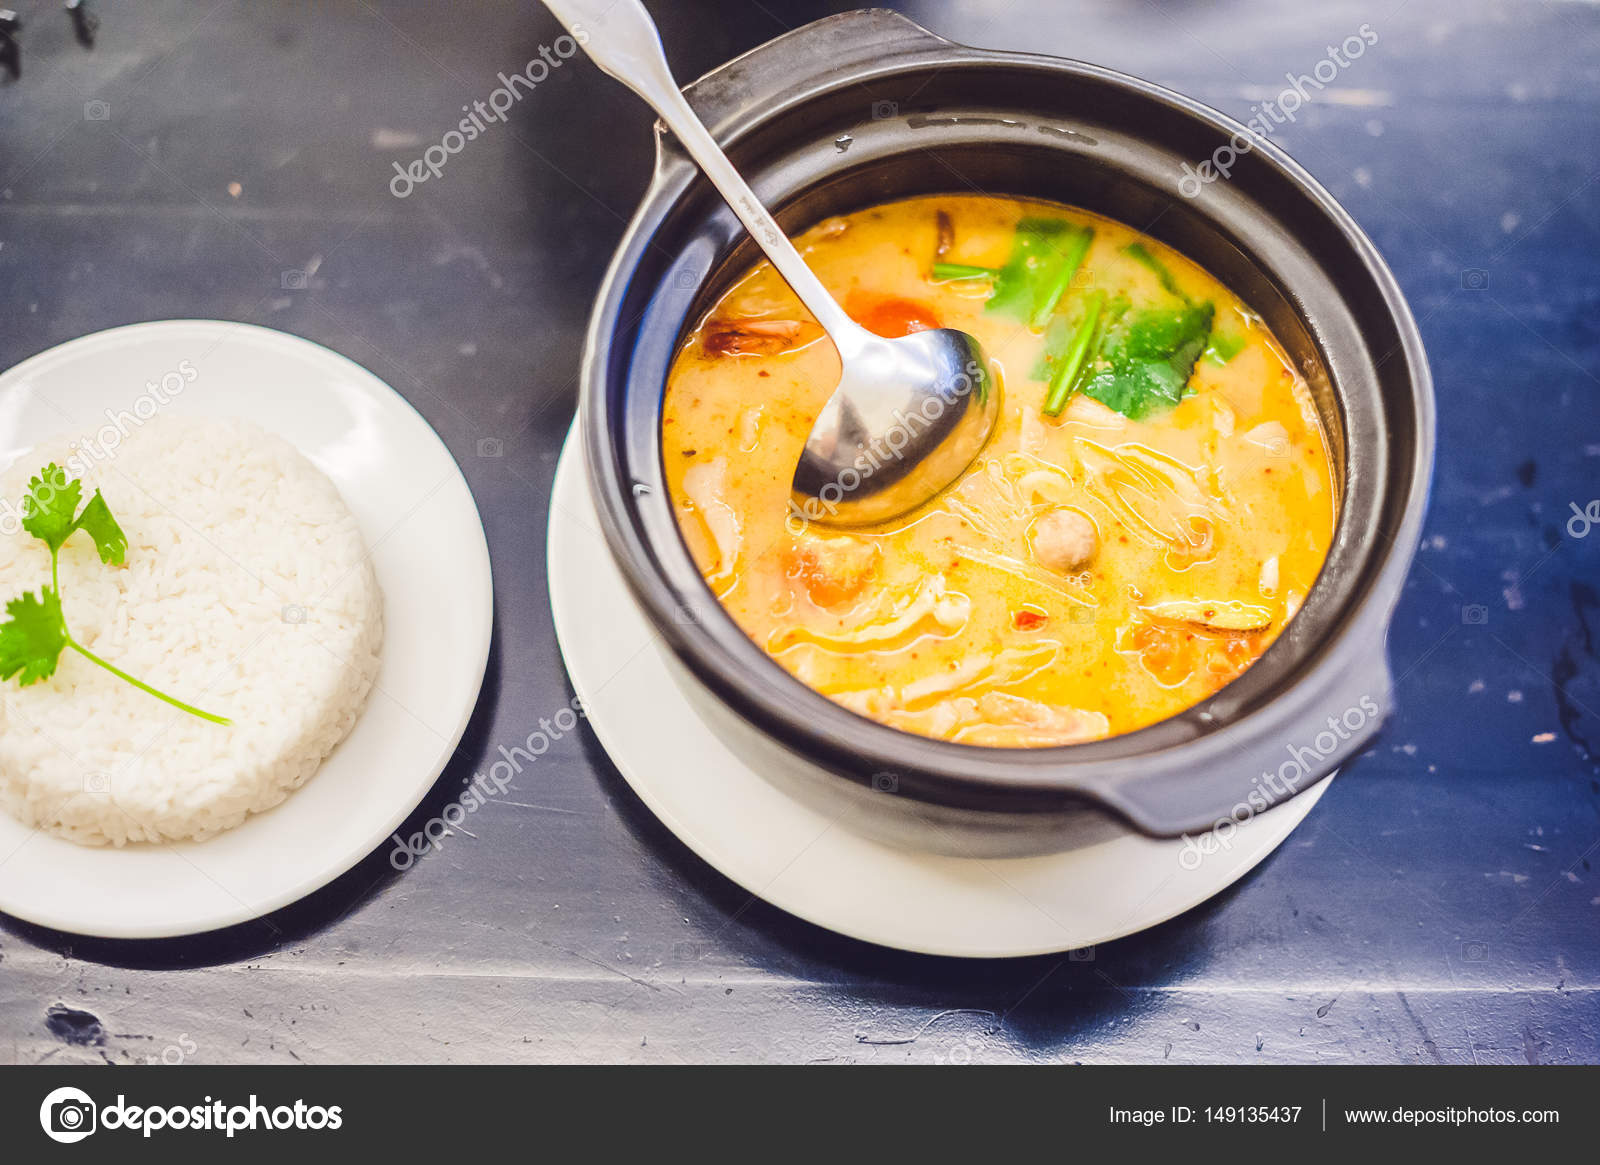 Cuisine Yam Tom Yam Kung Thai Cuisine Thai Food Stock Photo Galitskaya